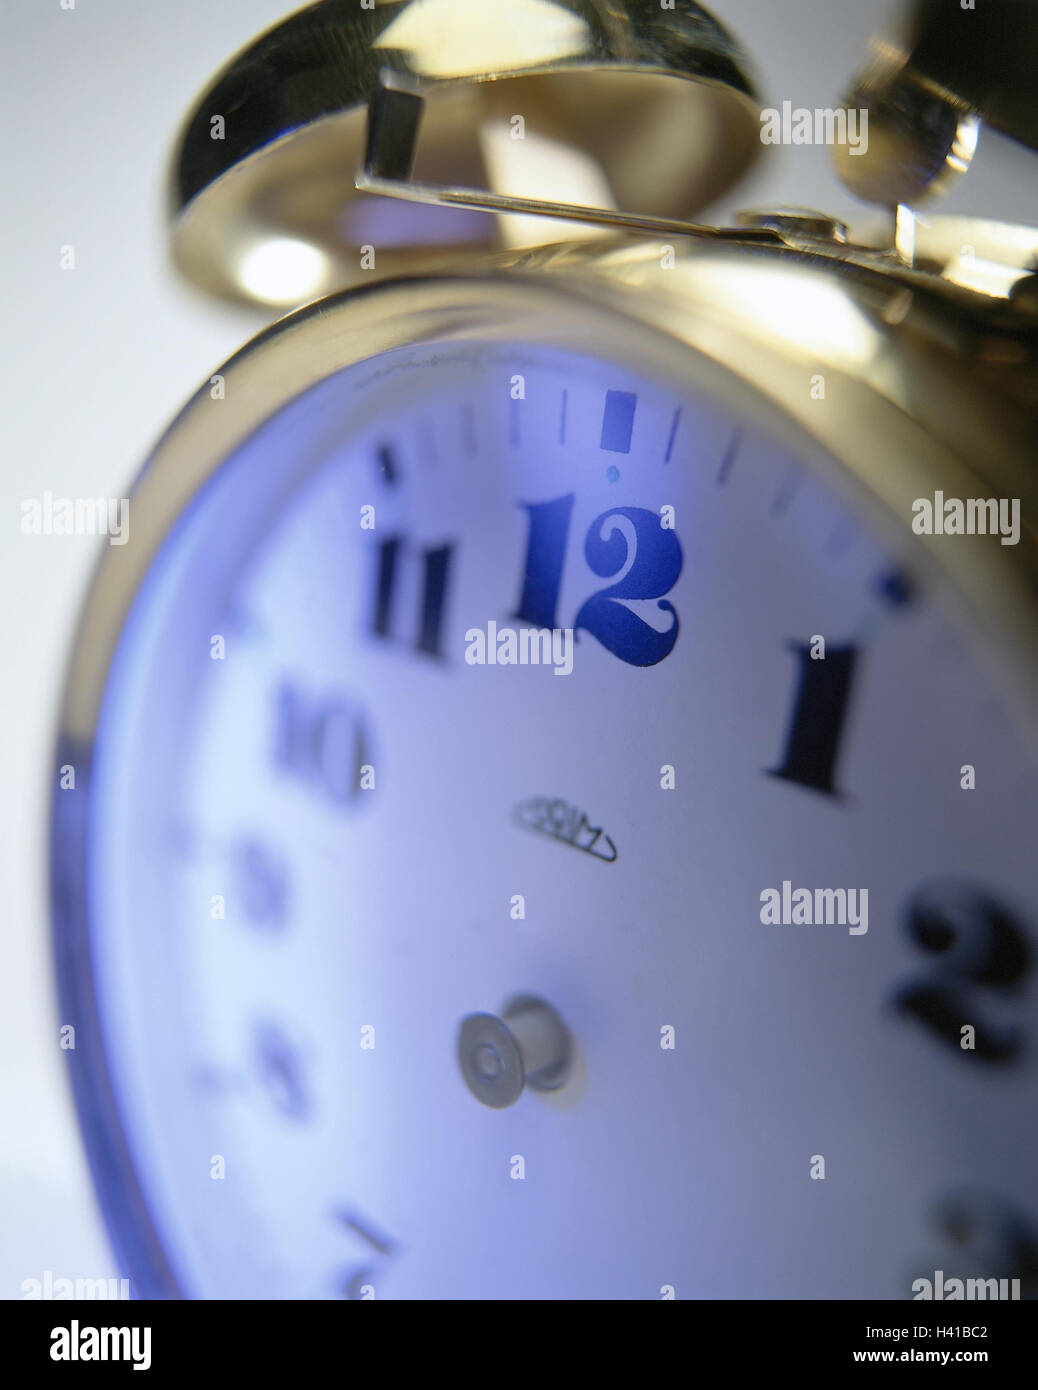 Alarm clocks, pointers, absent, icon, Timeless, close up, Still life, product photography, studio, clock, mechanically, - Stock Image